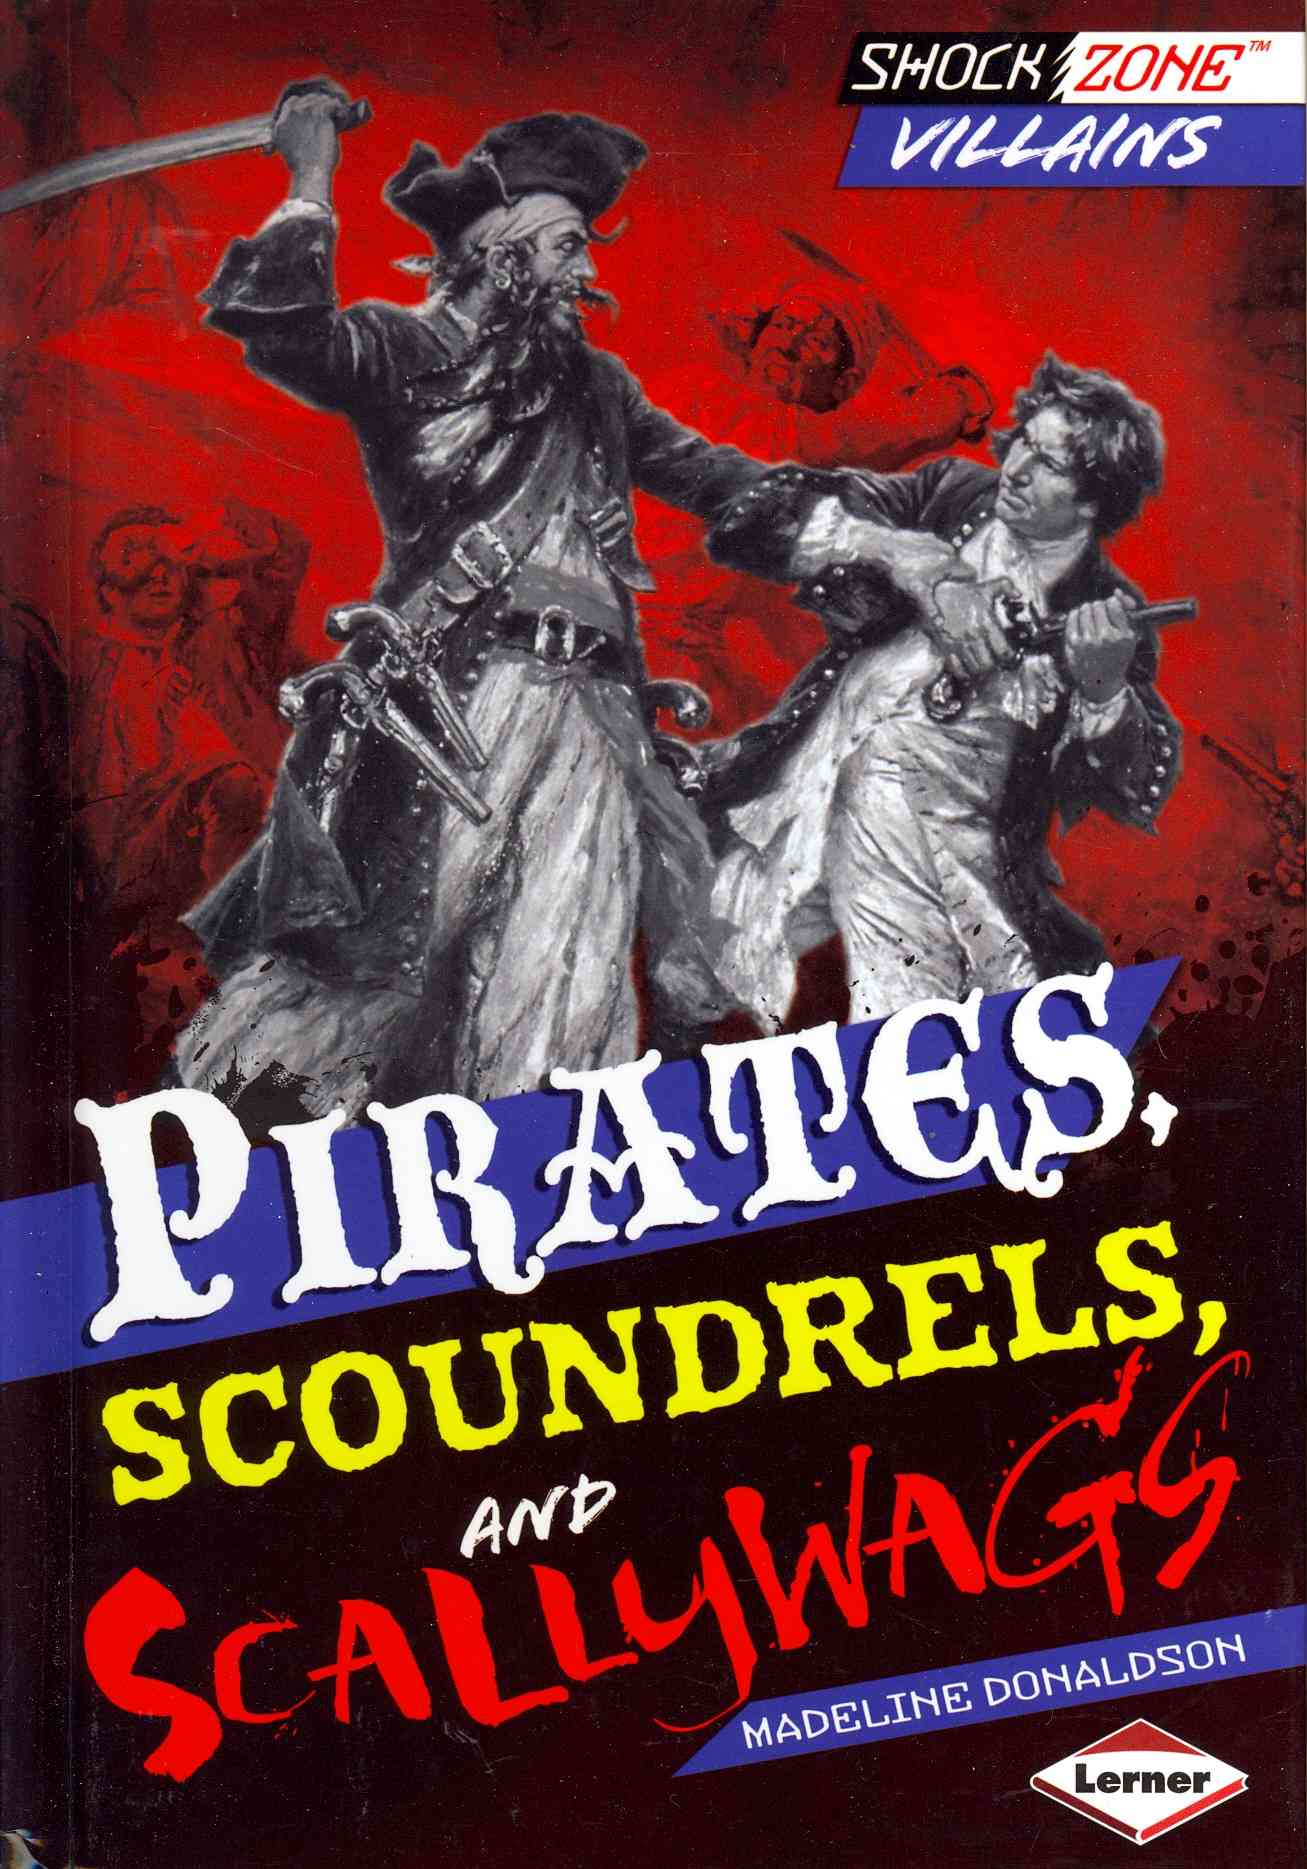 Pirates, Scoundrels, and Scallywags By Donaldson, Madeline